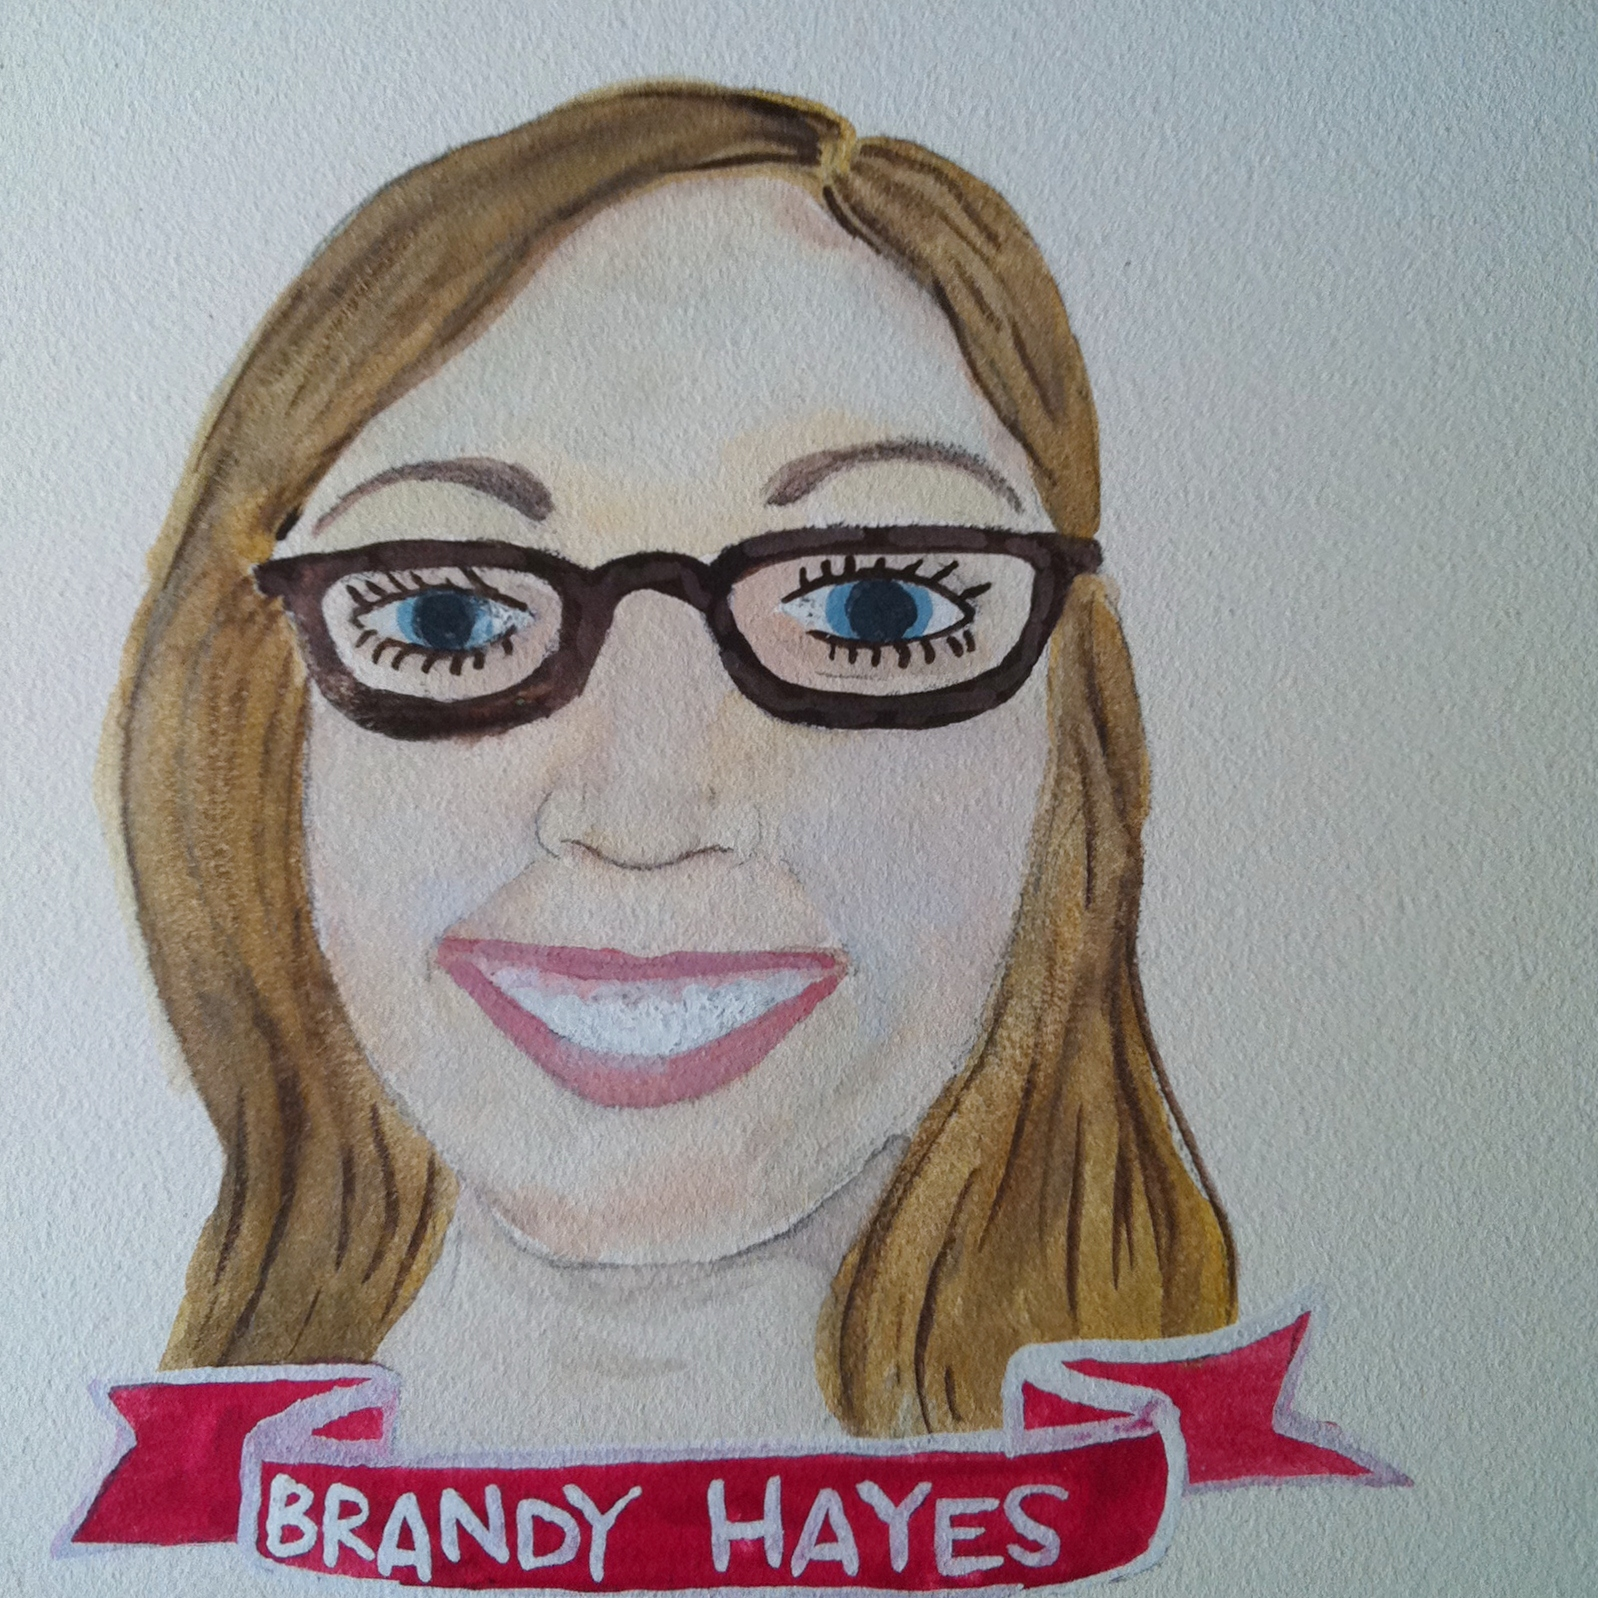 Talent Loves Company at Barbara Archer Gallery: 365 portraits by Lydia Walls - Brandy Hayes